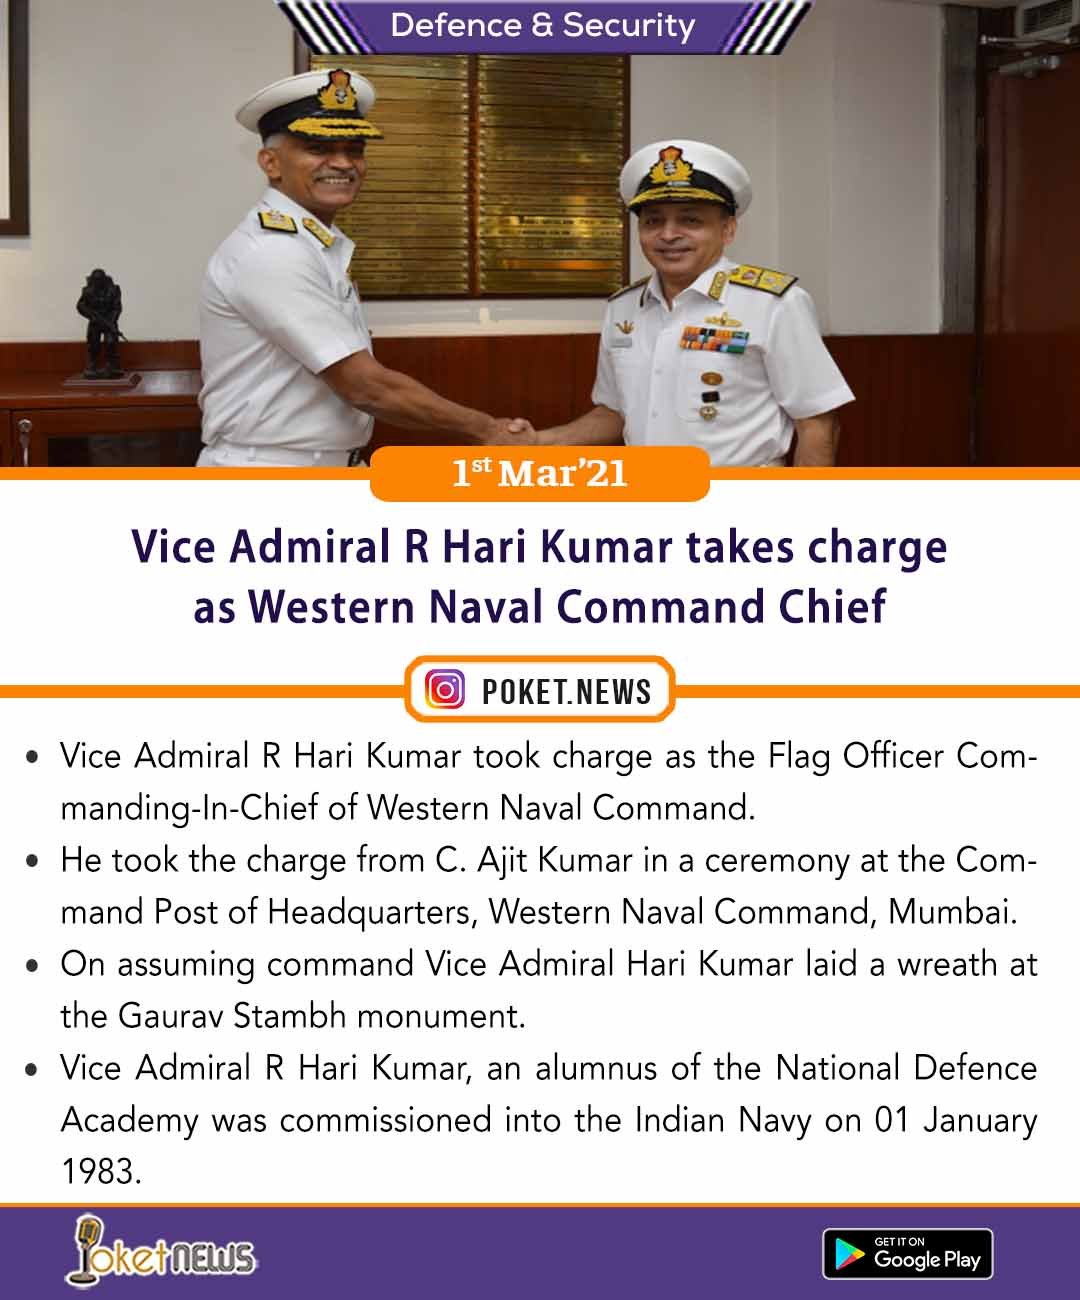 Vice Admiral R Hari Kumar takes charge as Western Naval Command Chief